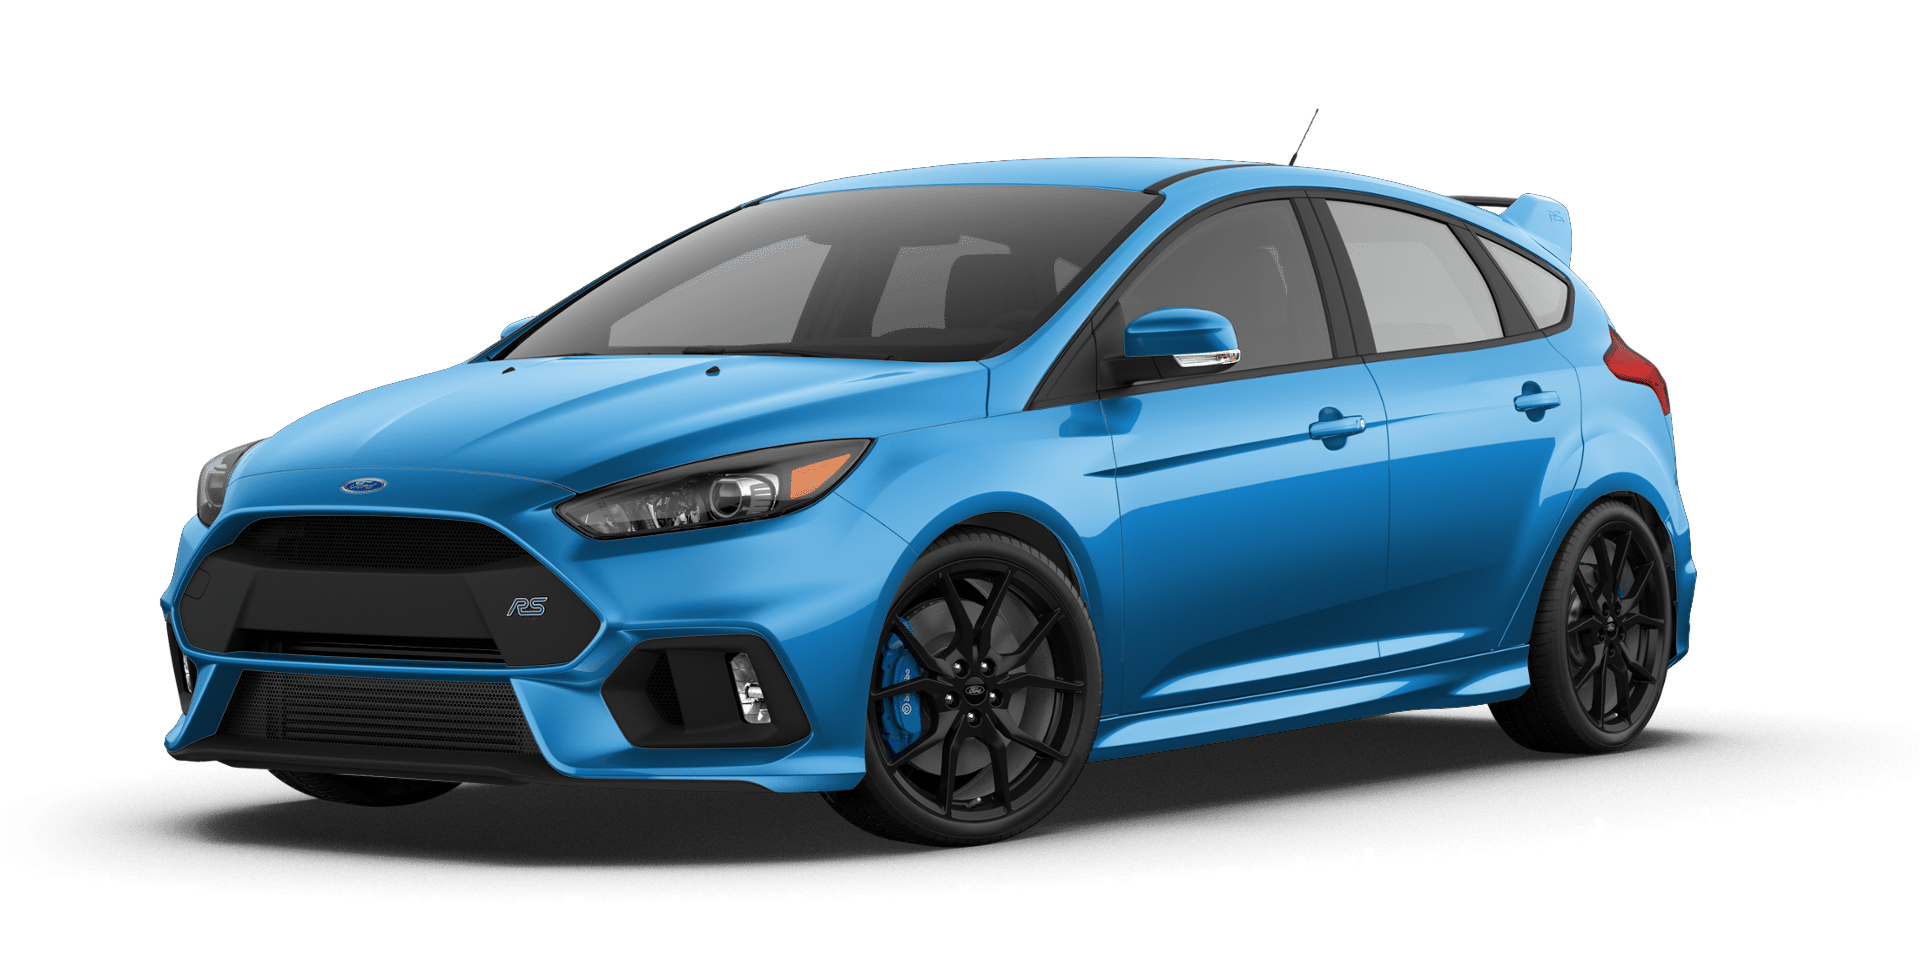 What Color Is Your Focus Rs Going To Be